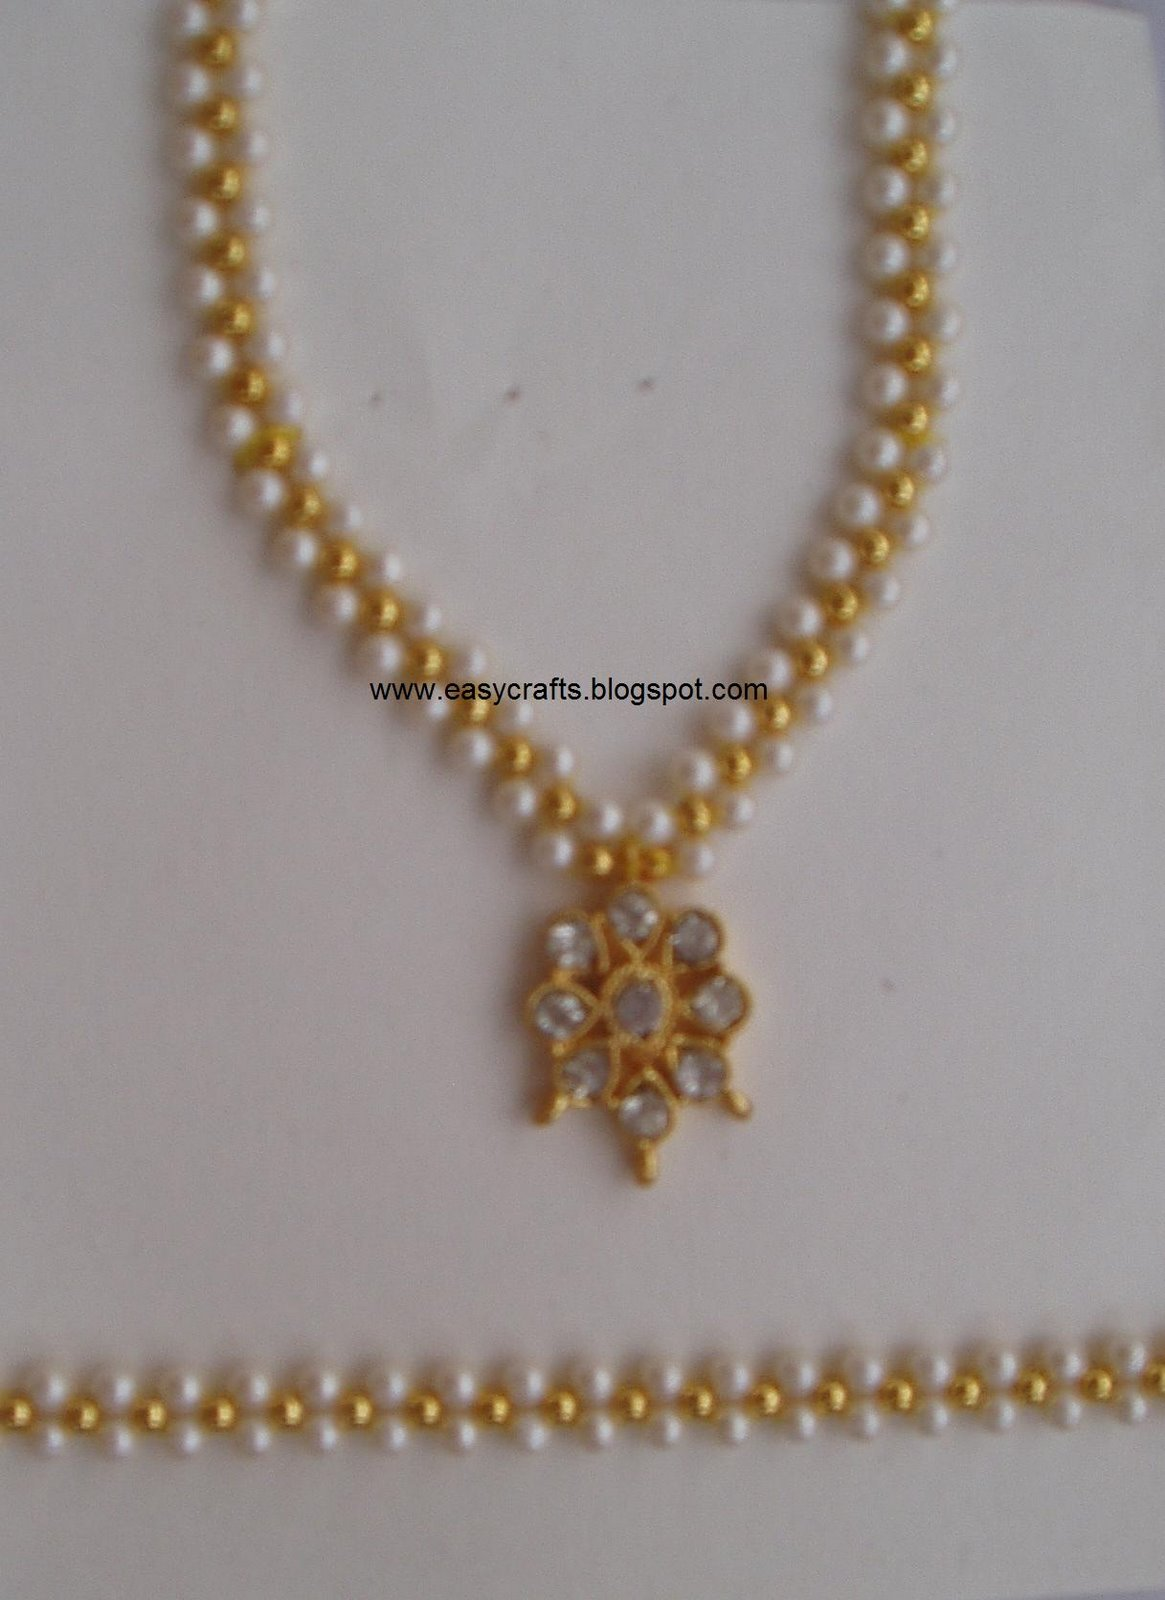 Easy Crafts Explore Your Creativity Artificial Jewellery